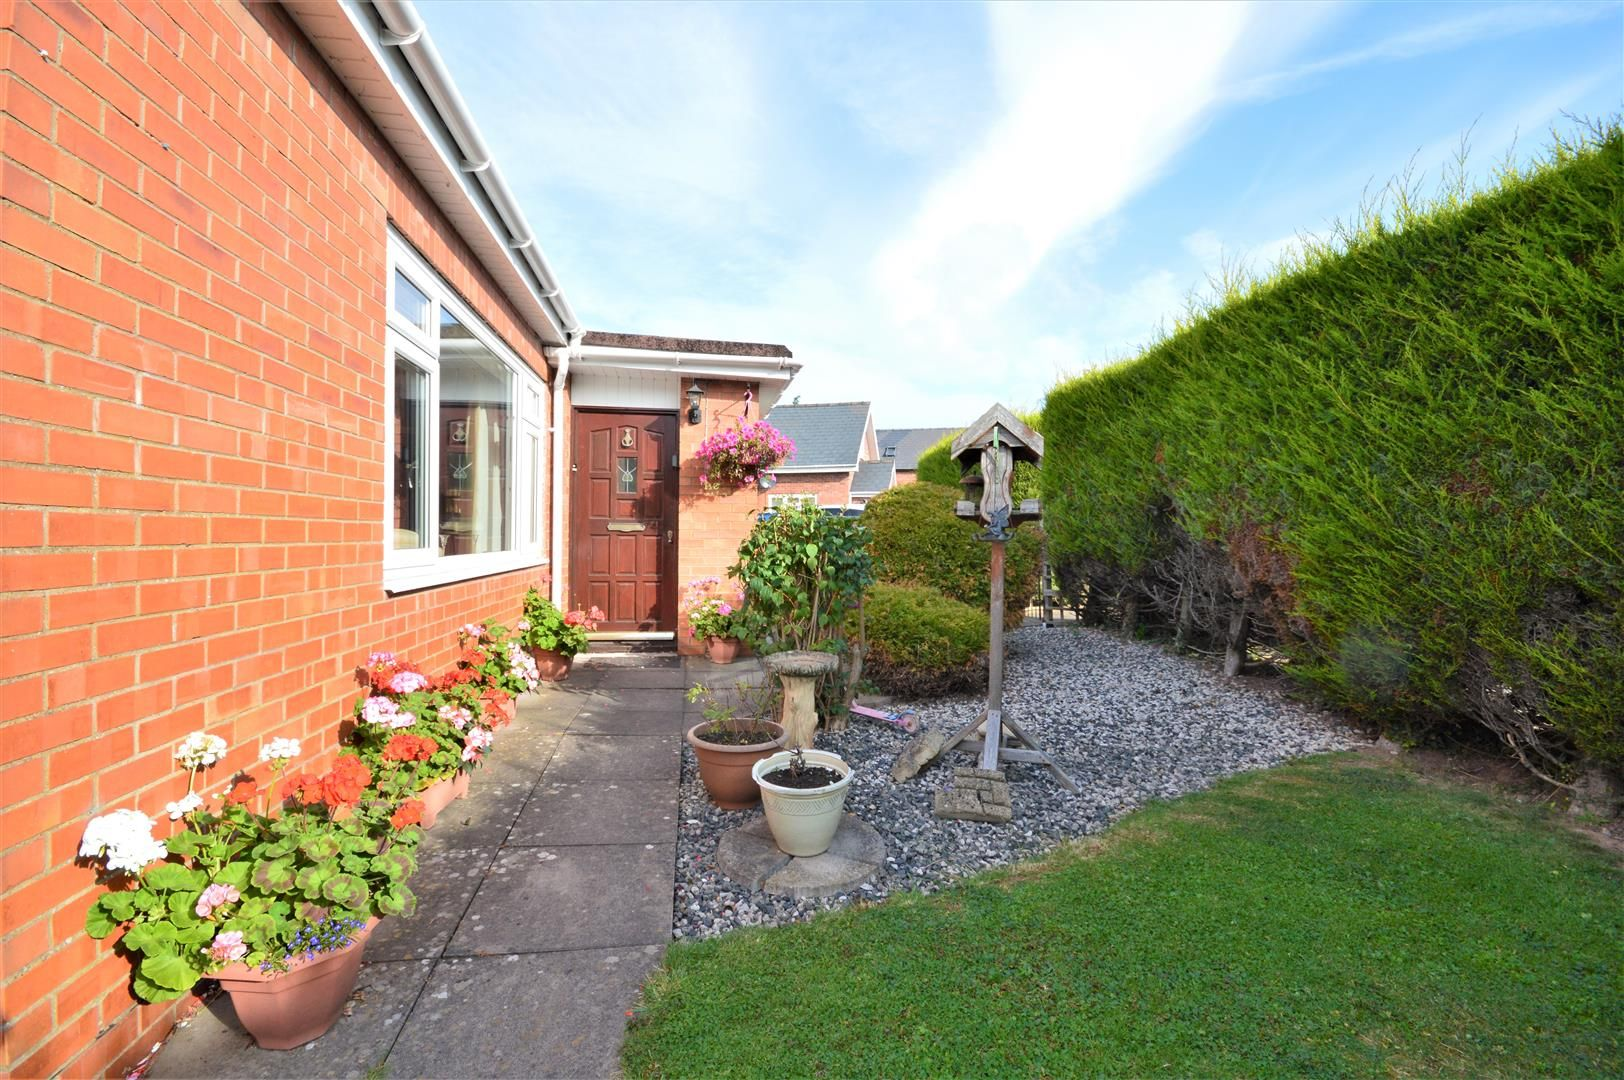 4 bed detached-bungalow for sale in Marden 14